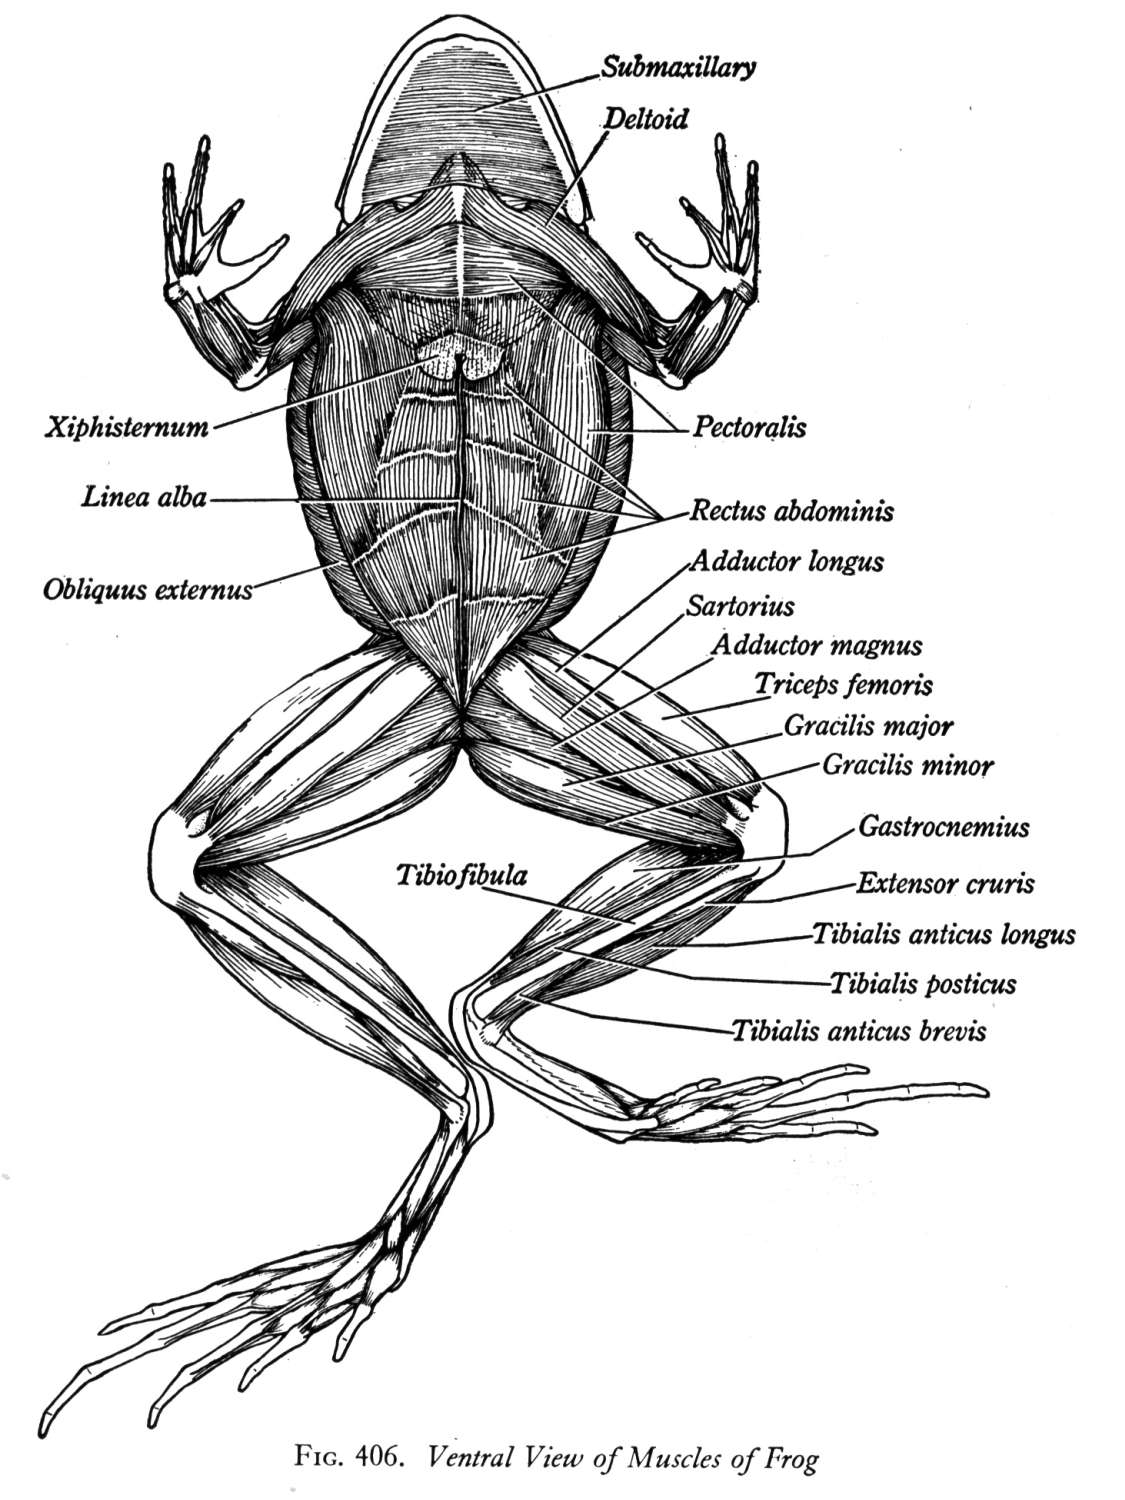 worksheet Frog External Anatomy Worksheet Answers biology 2 click here to view more diagrams of the frog muscle